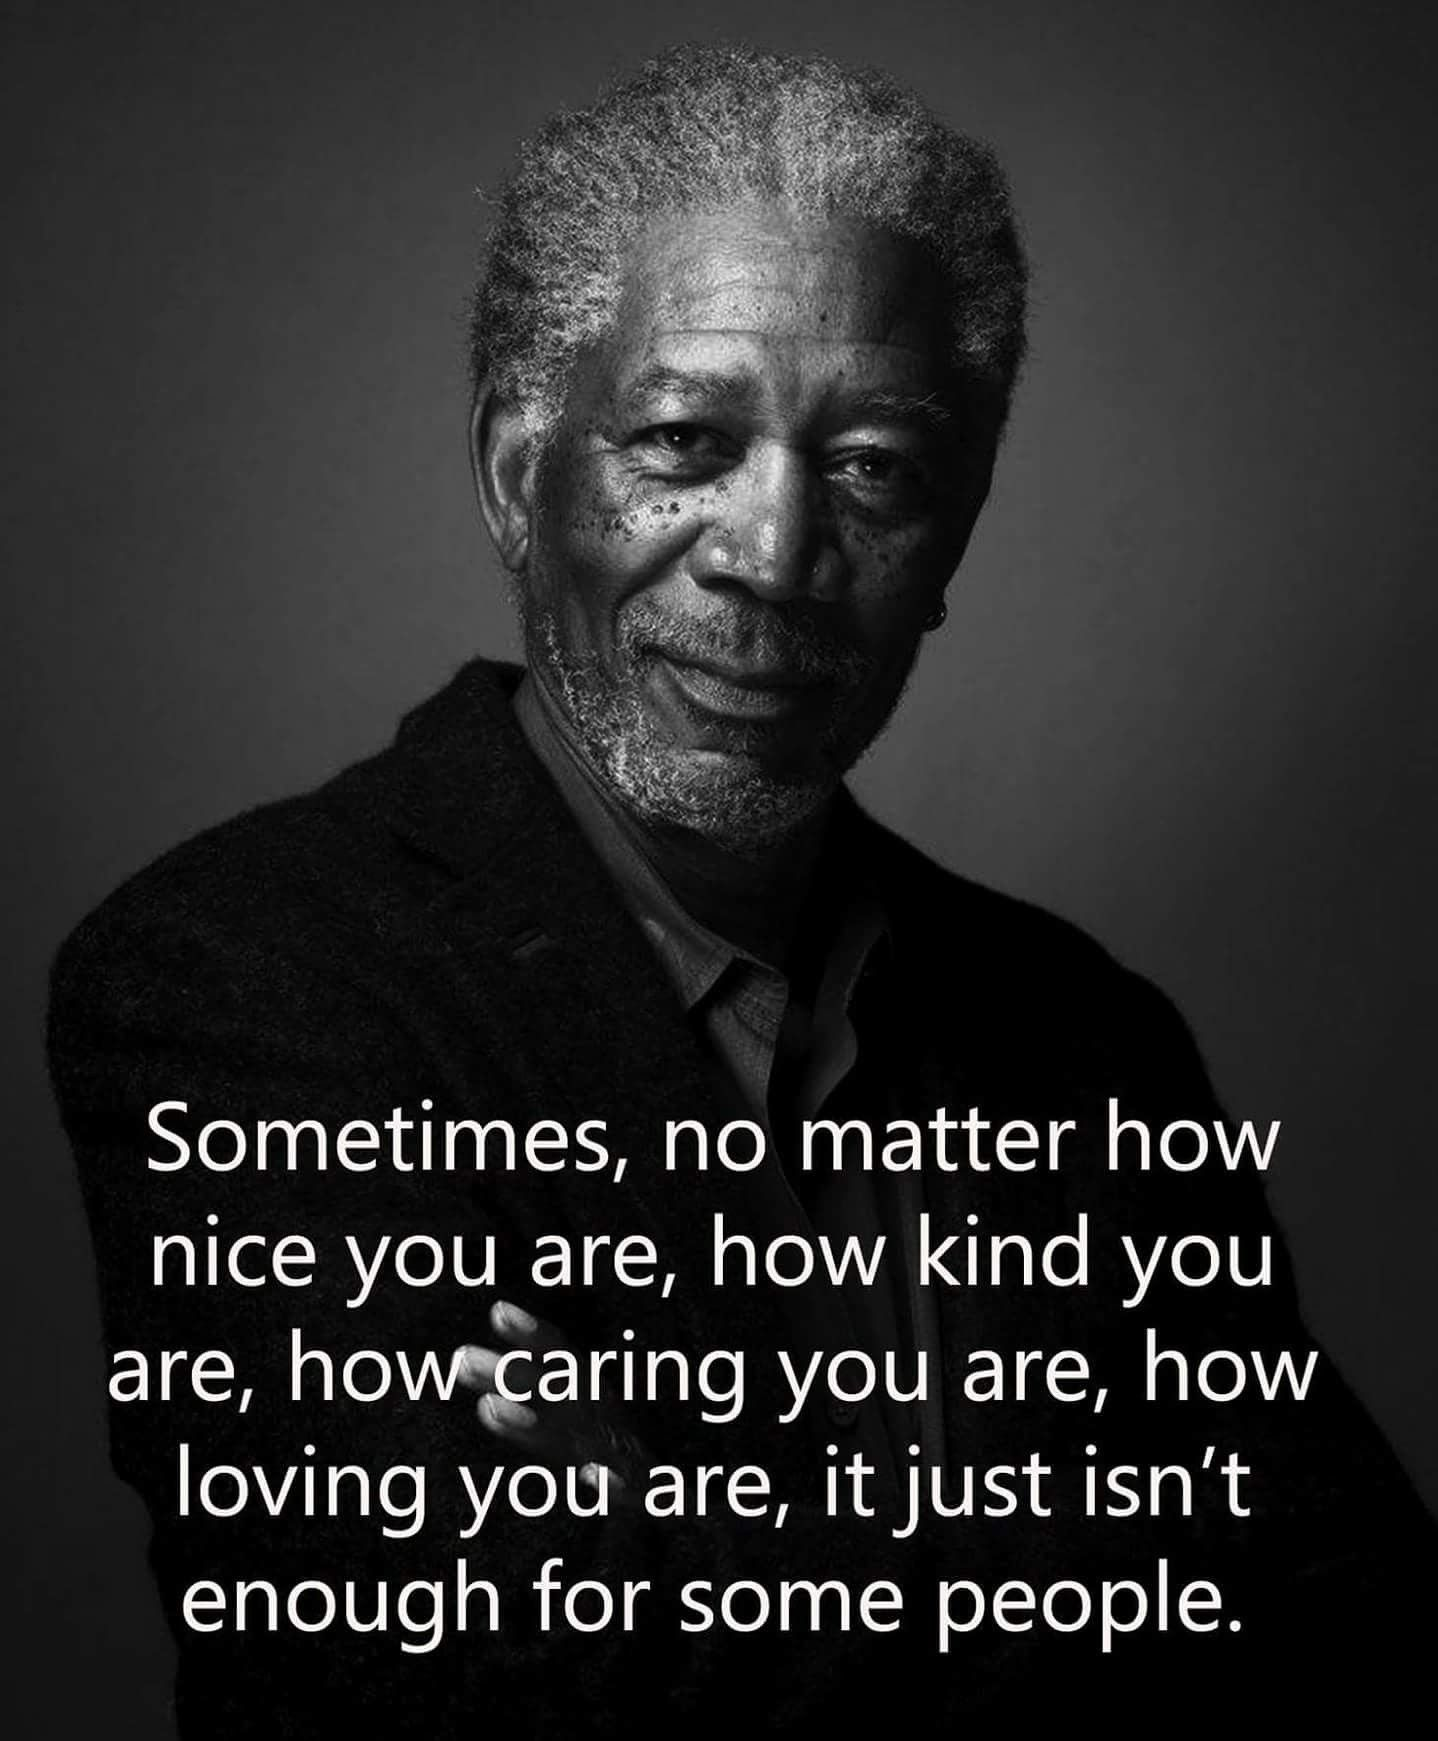 Sometimes no matter how nice you are, its just isn't enough for some people[1438*1741] By Morgan Freeman